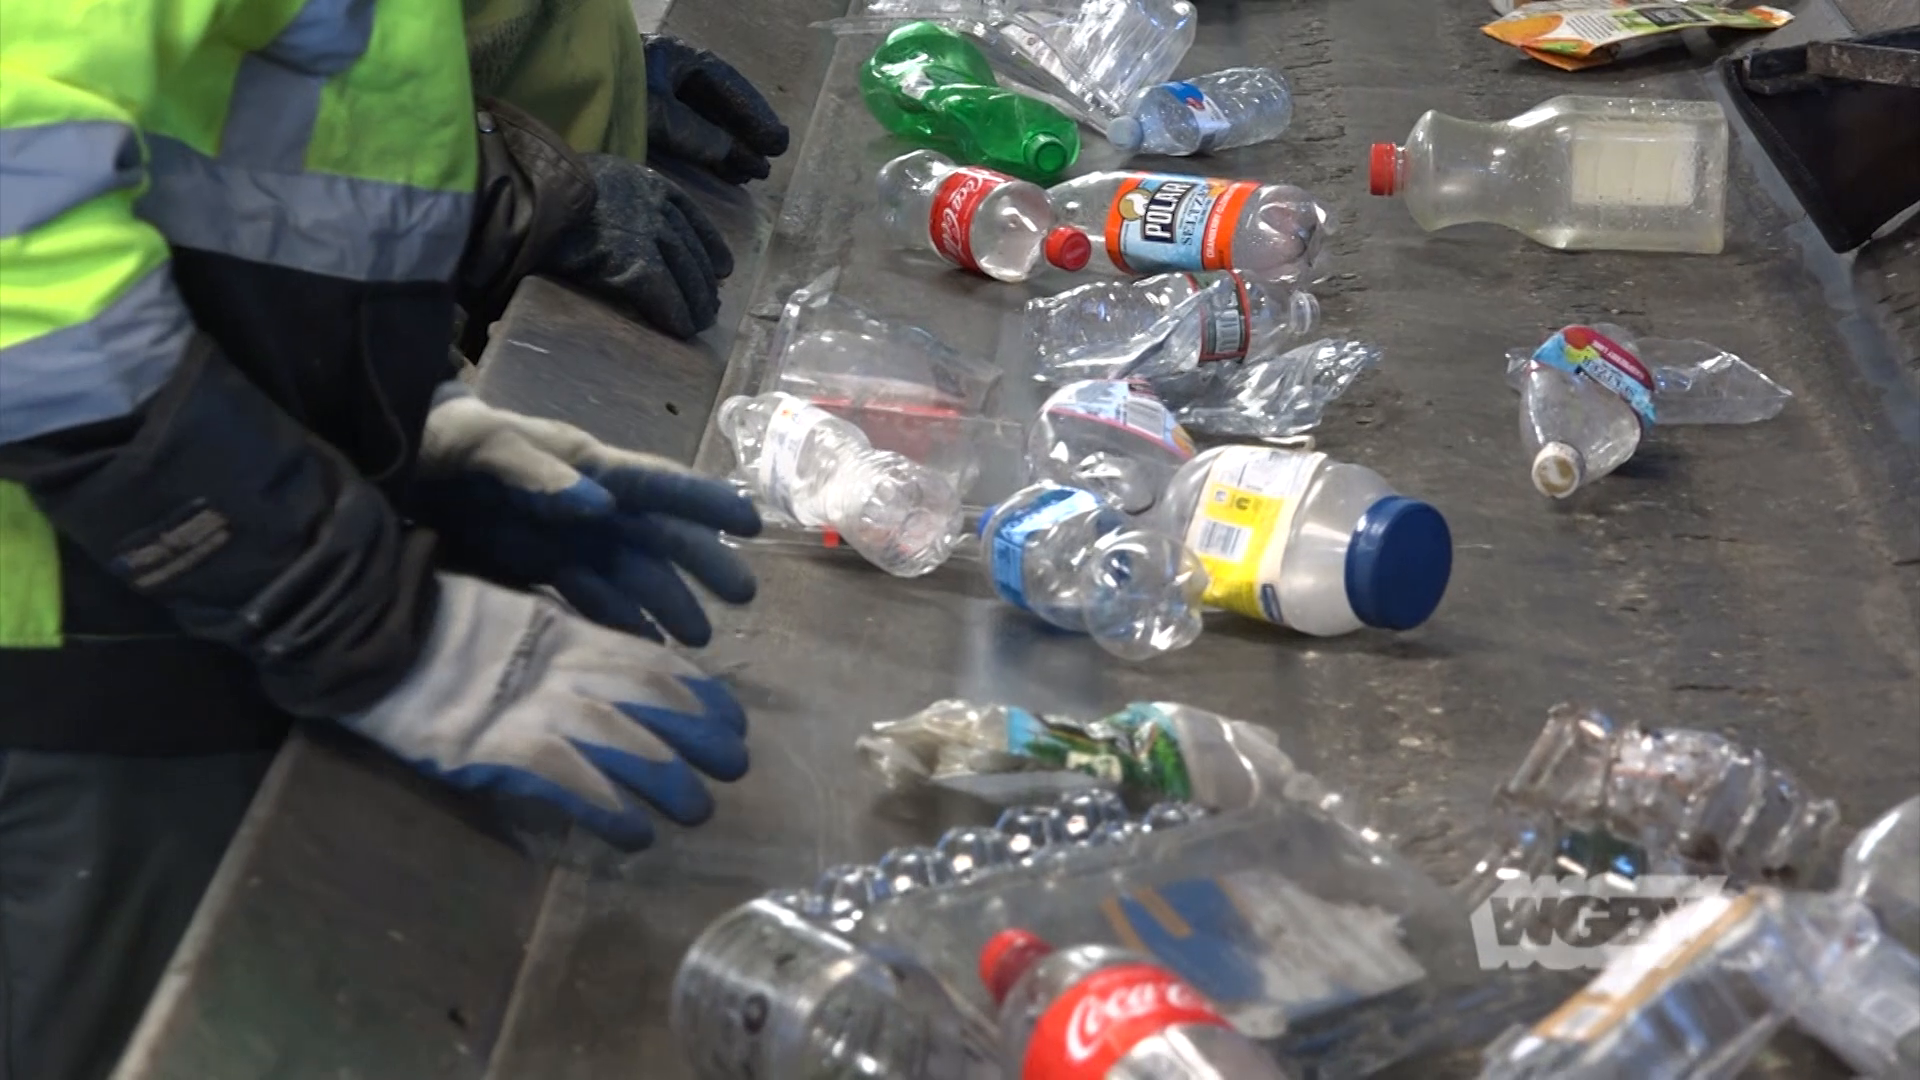 Visit the Springfield Materials Recycling Facility, the largest recycler in western Mass, and learn about single and dual-stream post-consumer recycling.